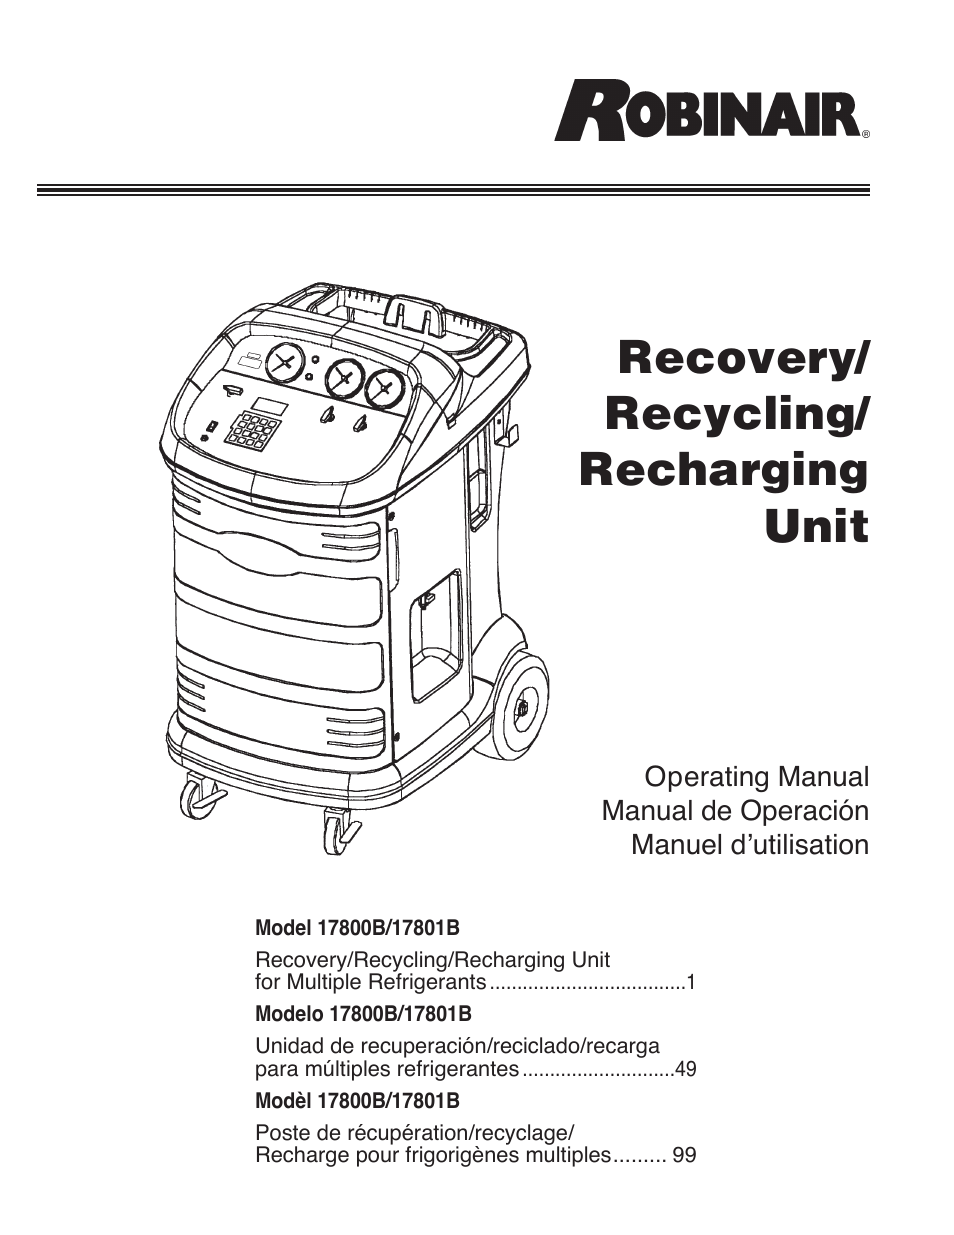 Robinair 17801B Recovery, Recycling, Recharging Unit User